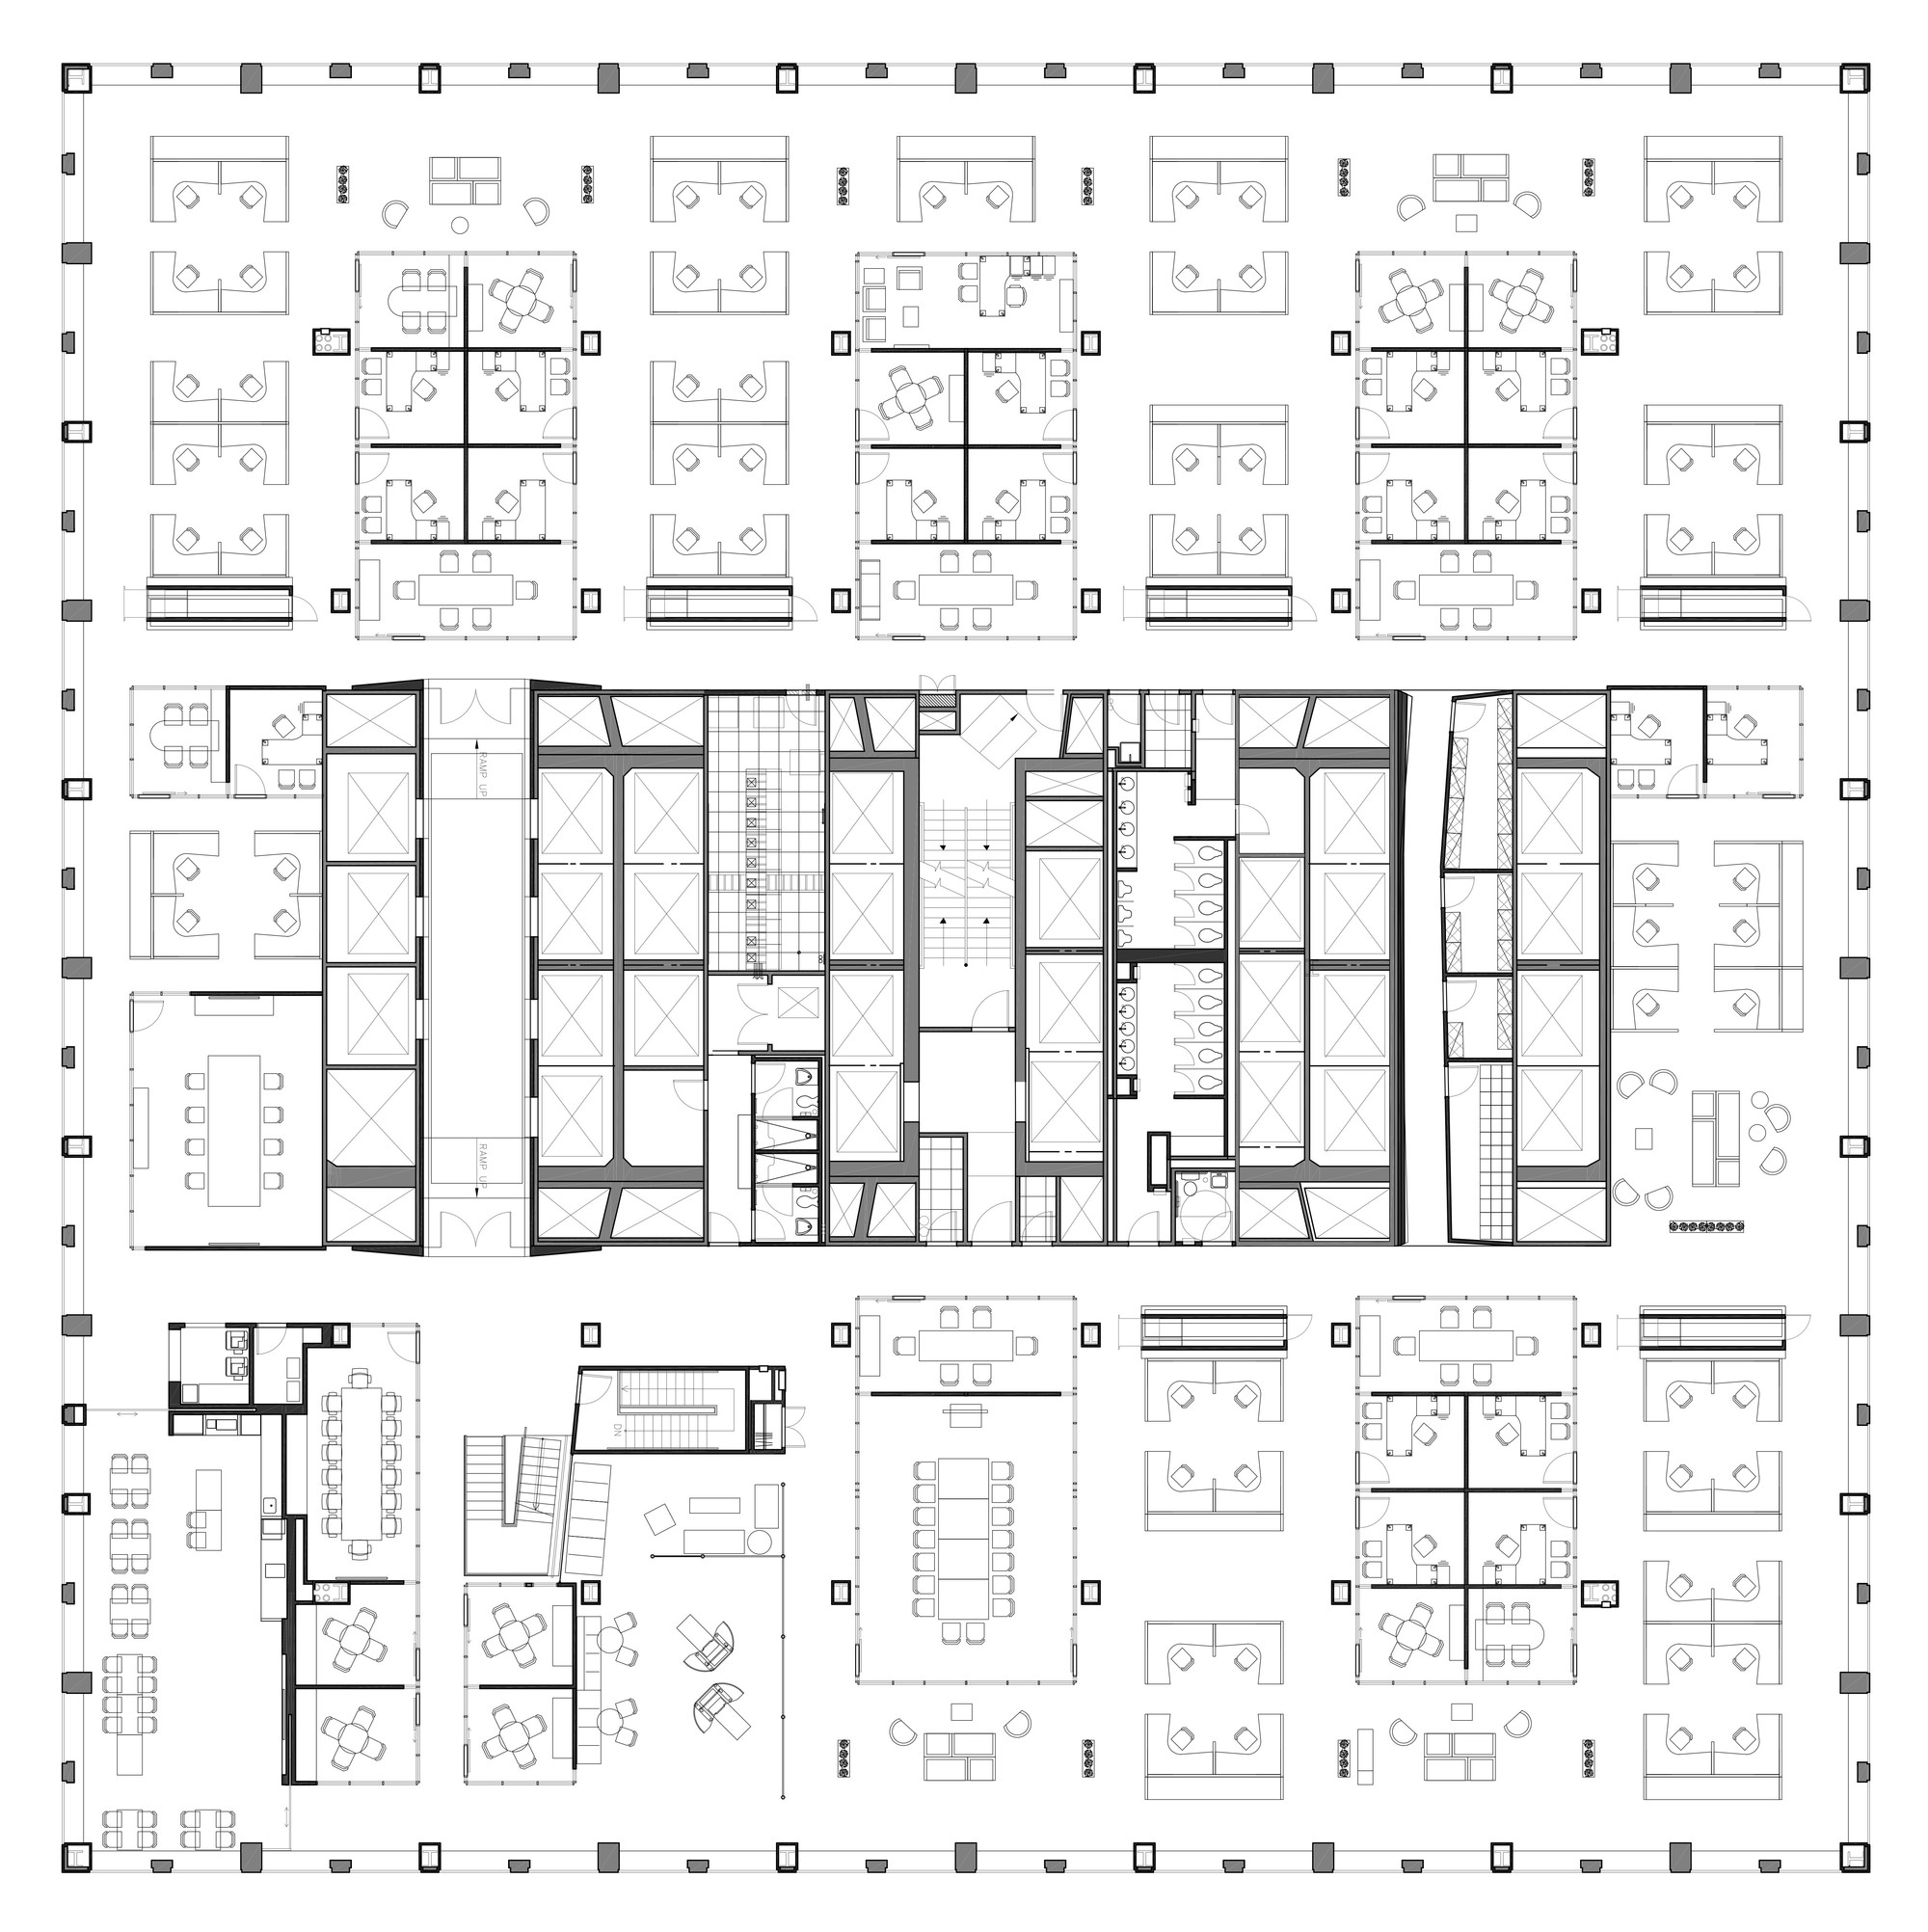 Comfloor Planning Finance : Gallery of Midtown Financial Company / a + i architecture - 12